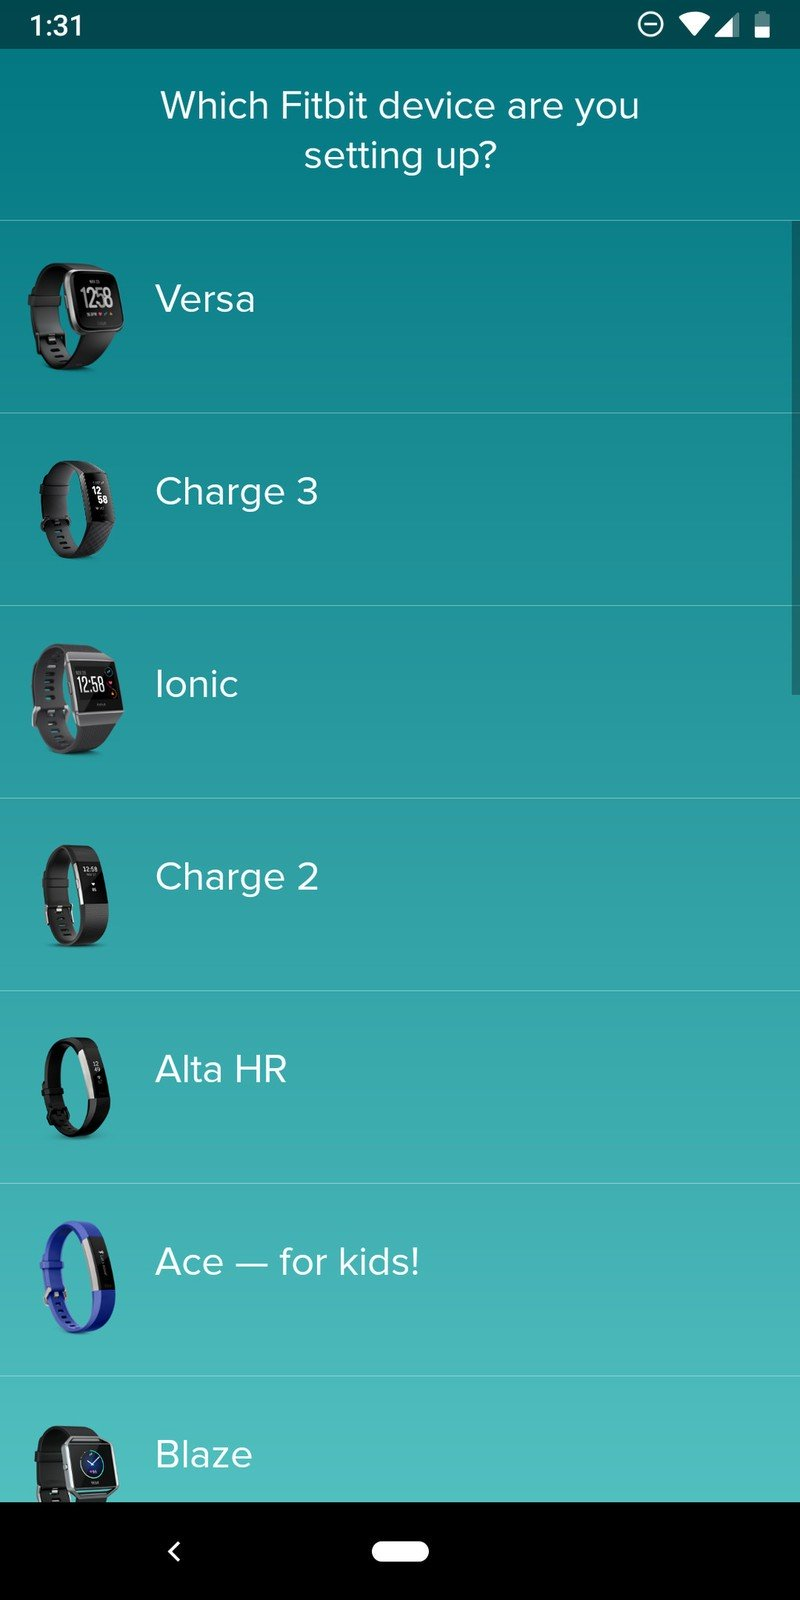 how-to-set-up-fitbit-charge-3-10.jpg?ito